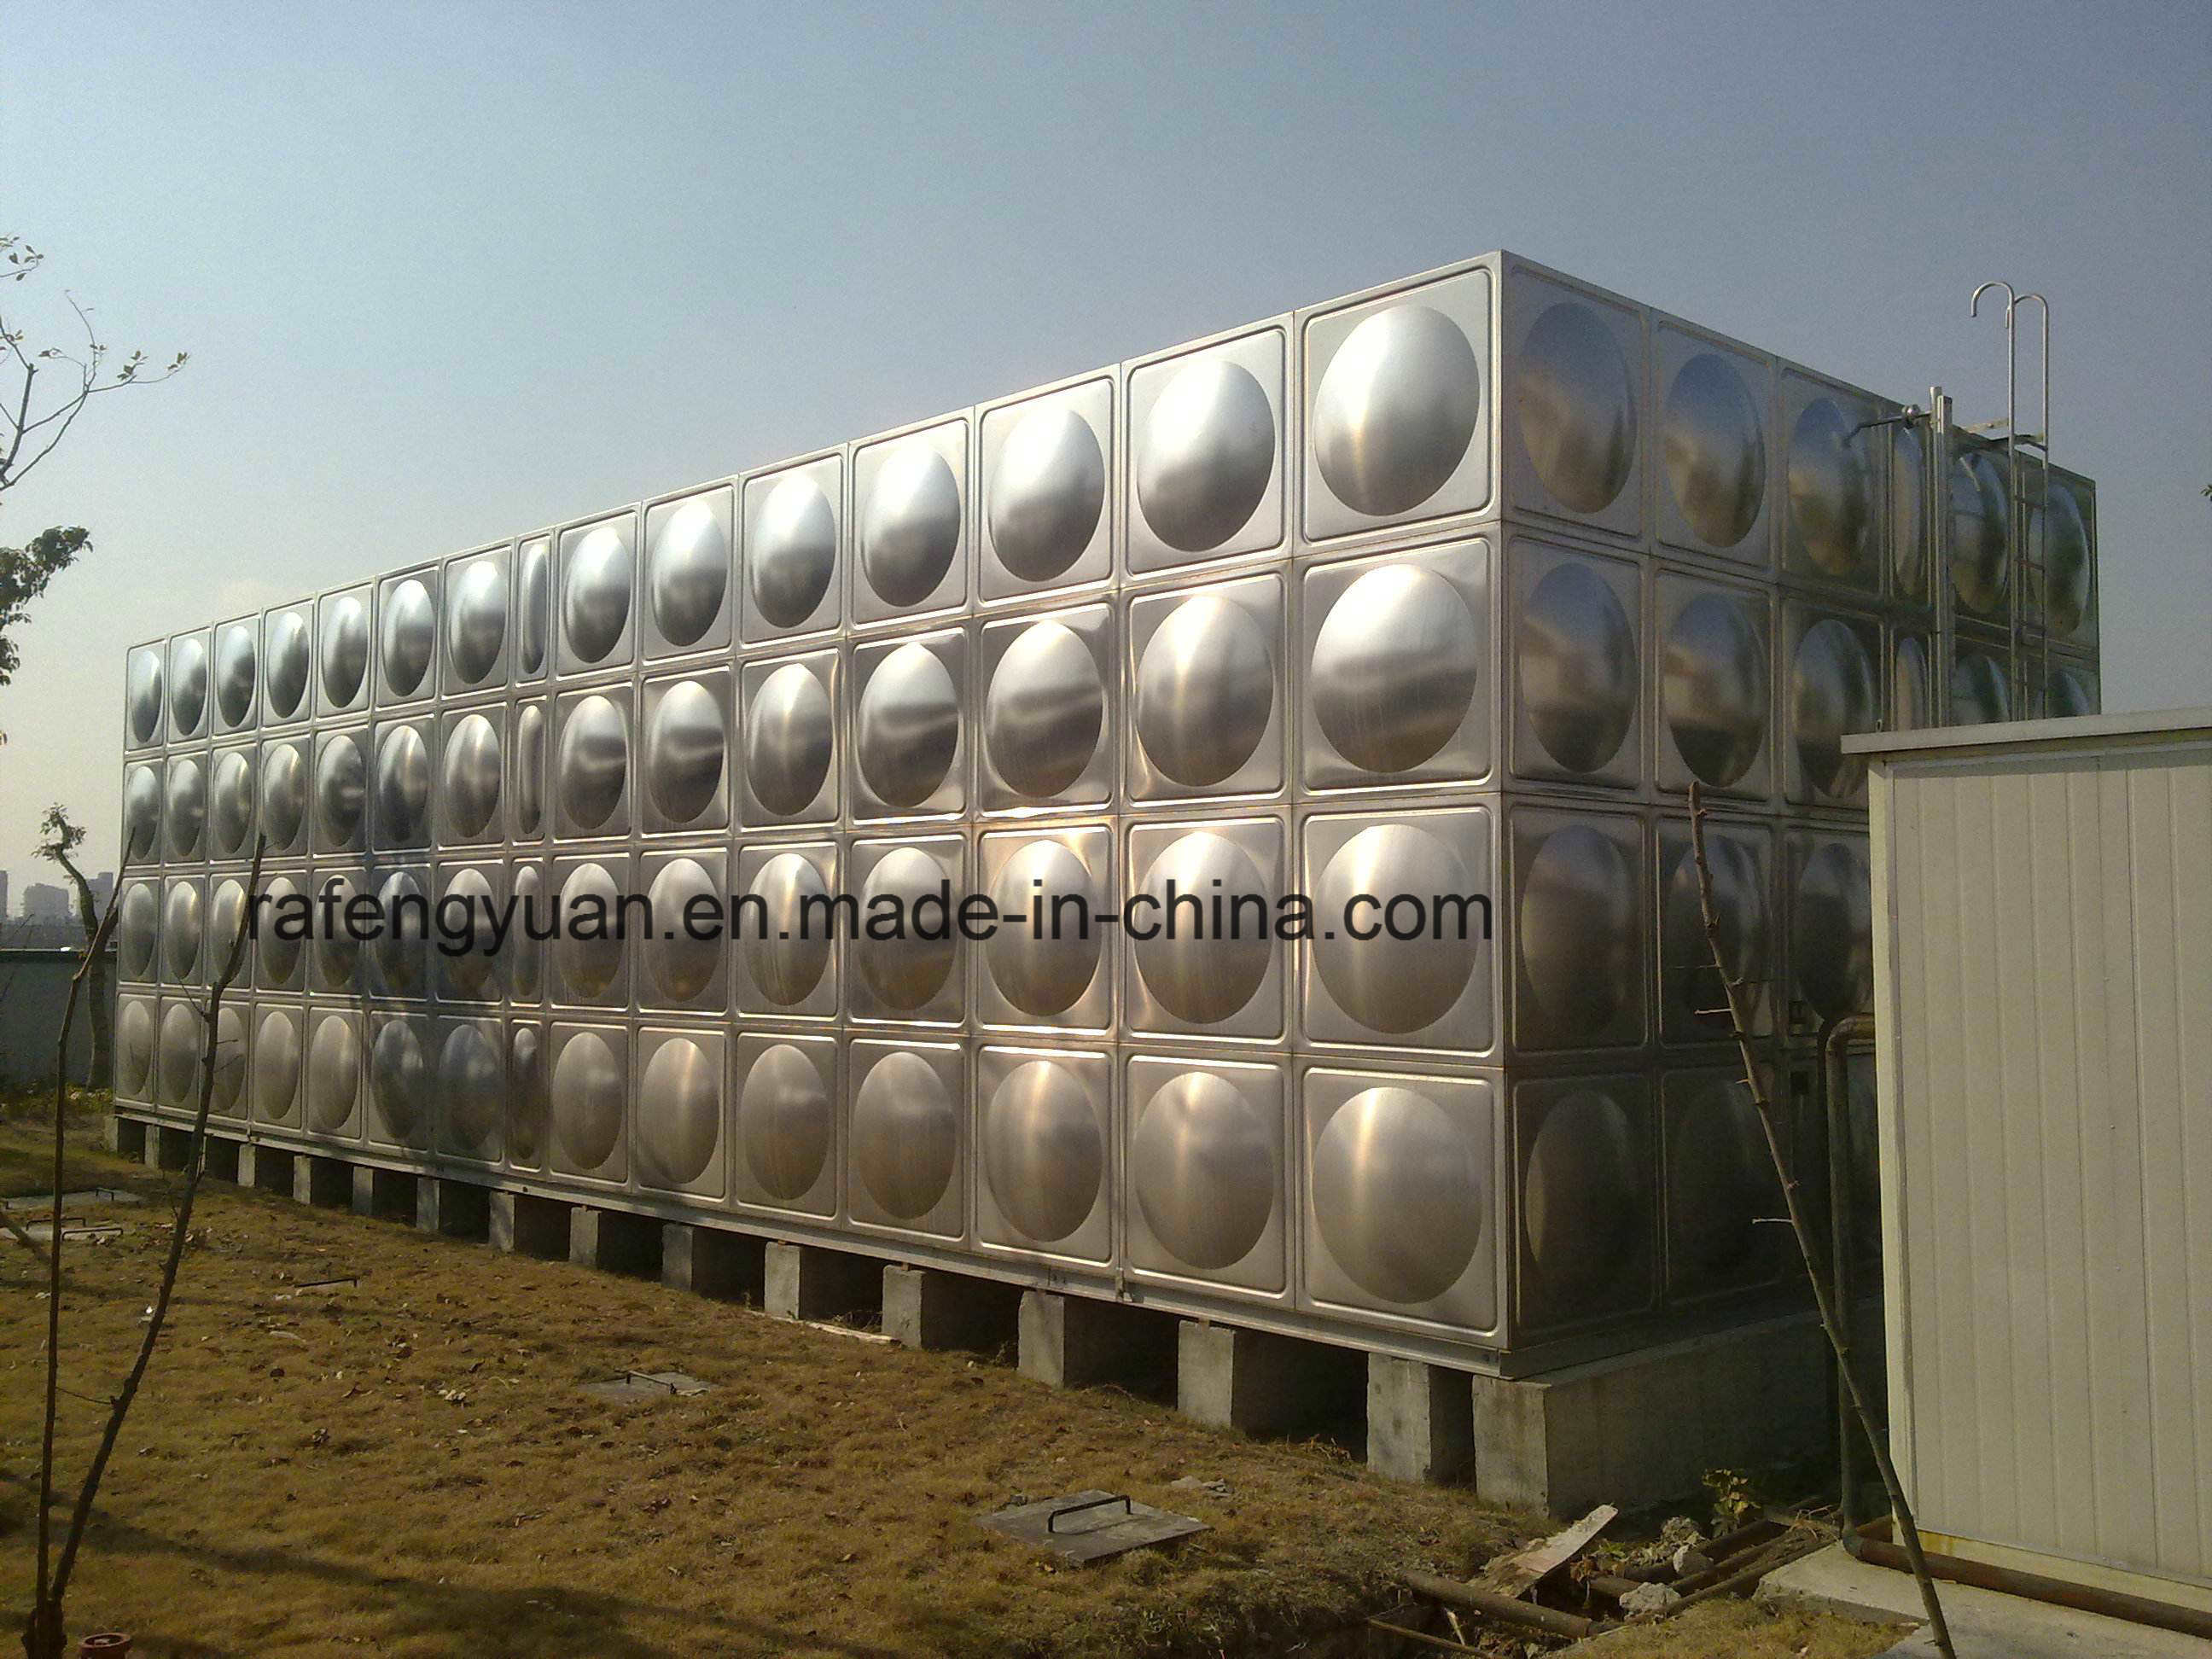 Stainless Steel Water Tank with High Quality